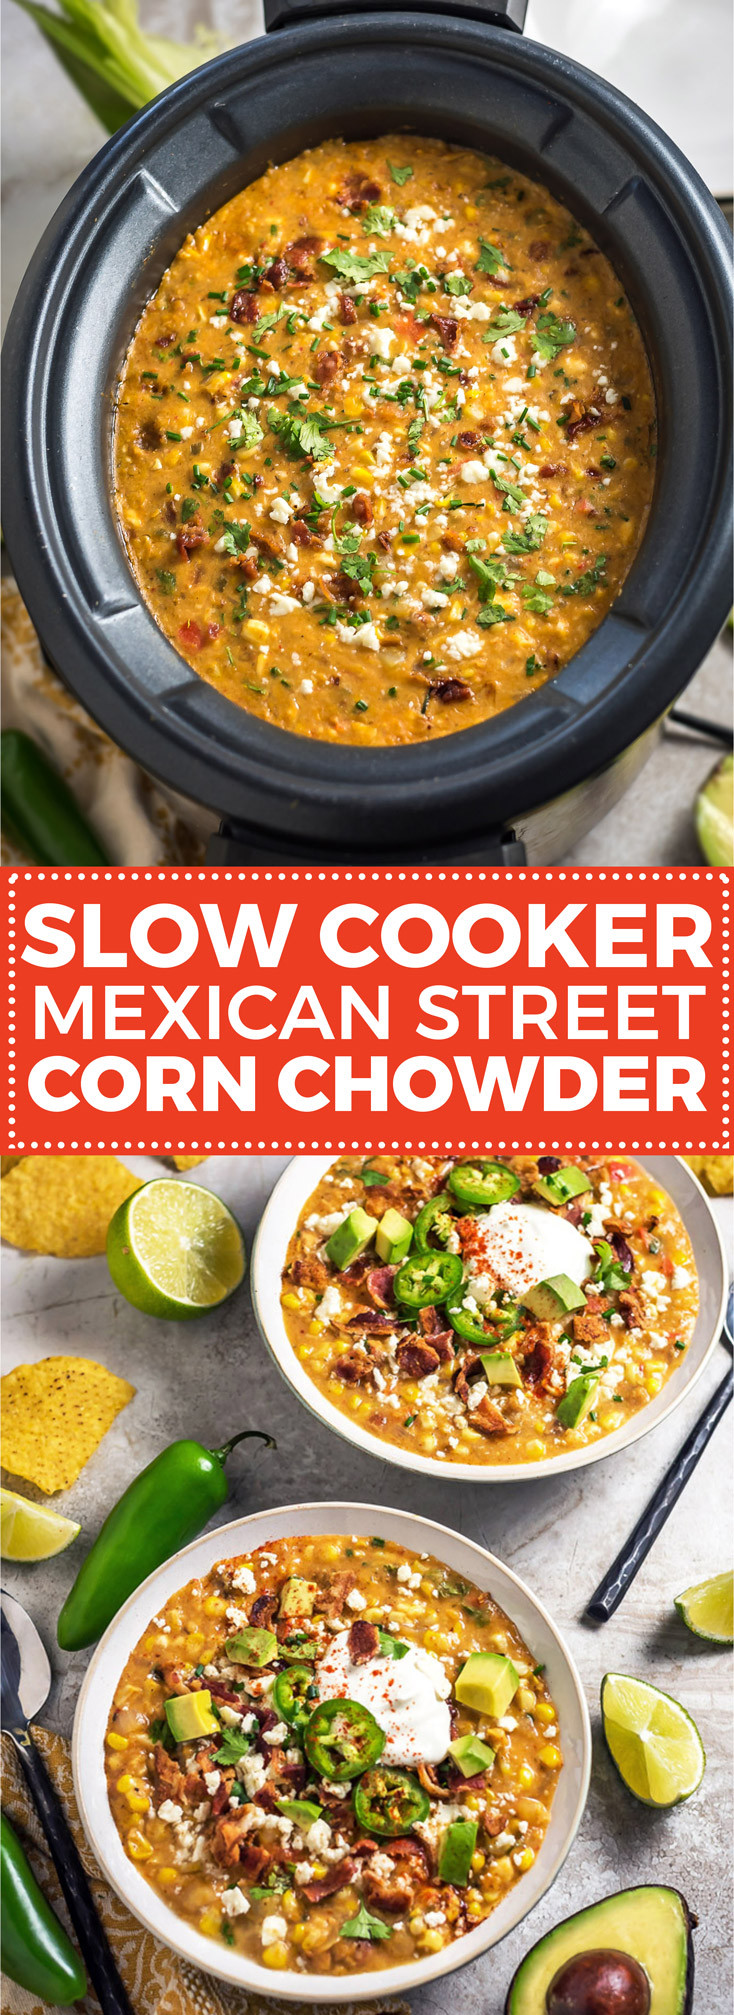 Mexican Corn Chowder  Slow Cooker Mexican Street Corn Chowder Host The Toast